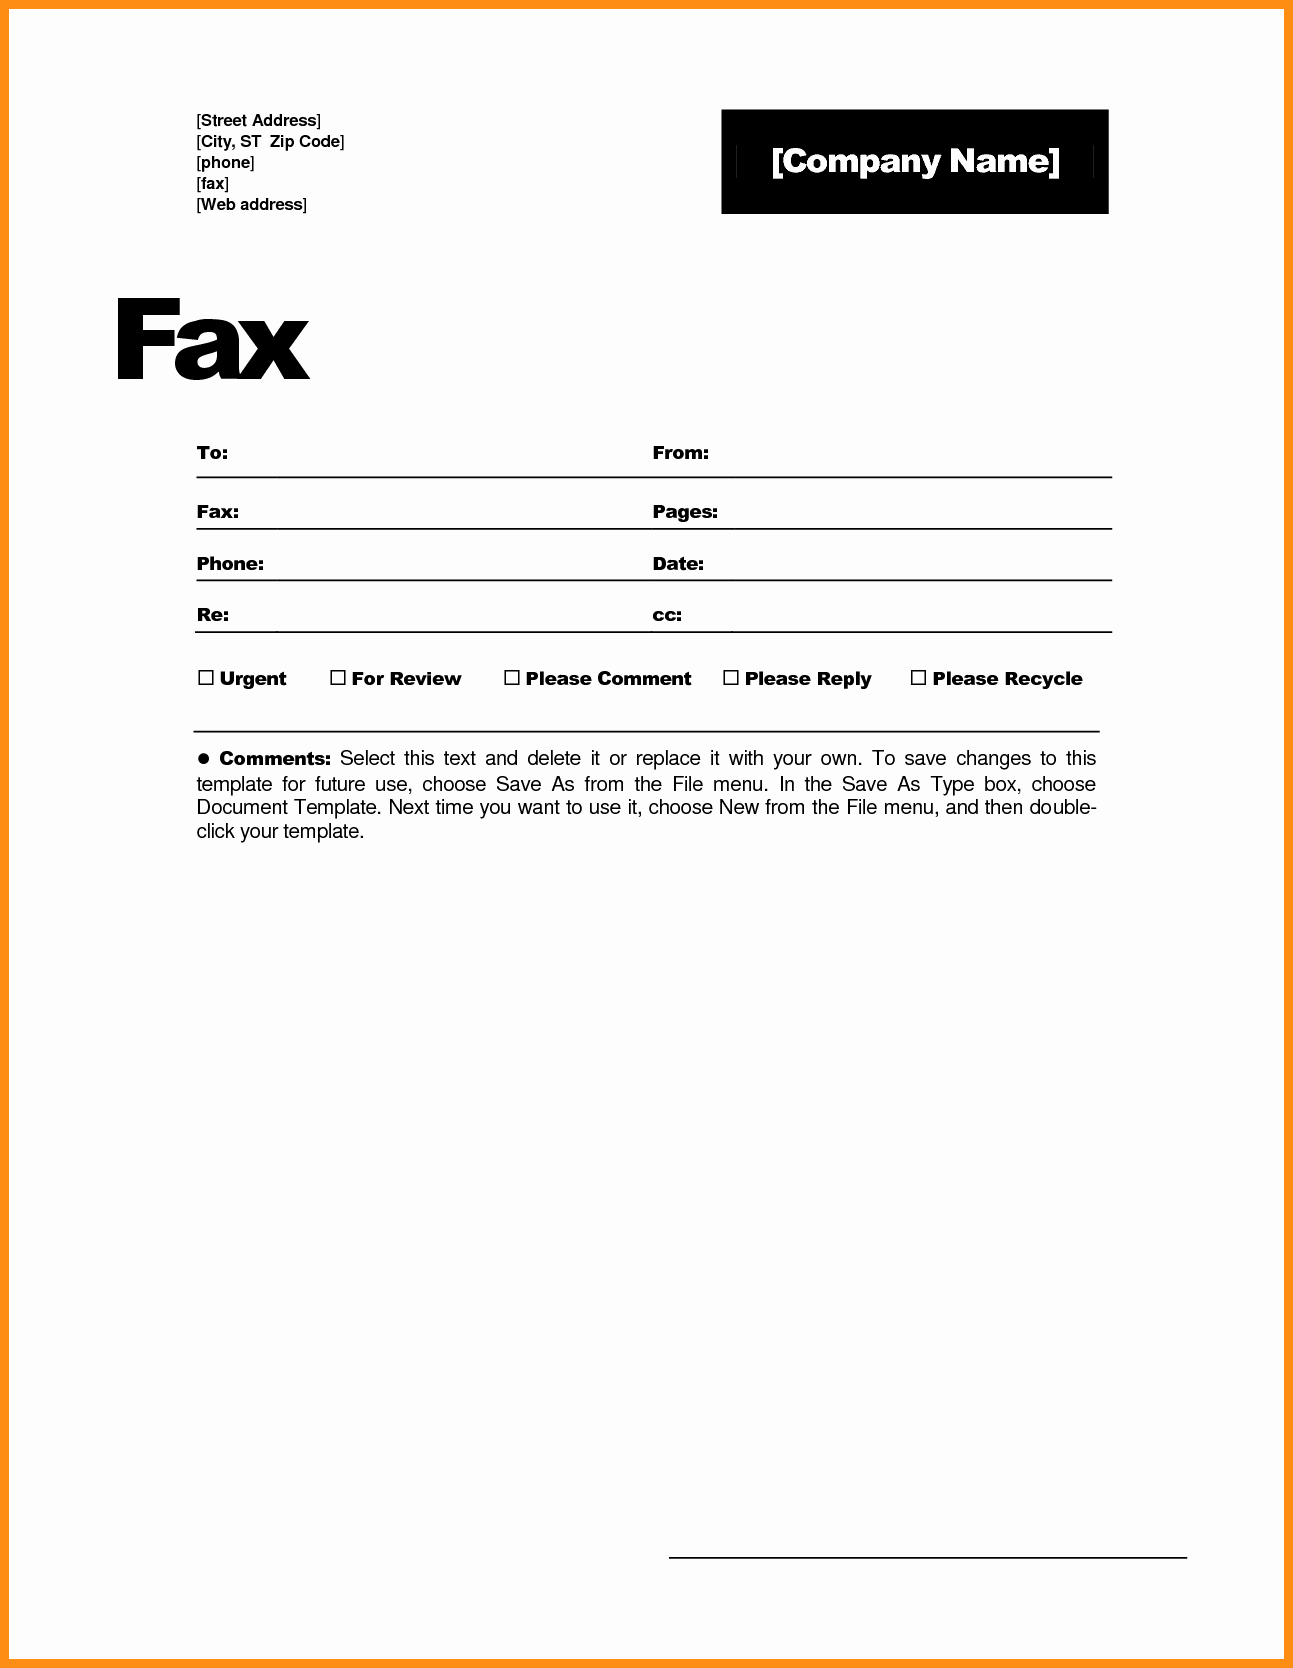 Fax Cover Sheet Pdf Free Fresh 6 Free Fax Cover Sheet Template Word